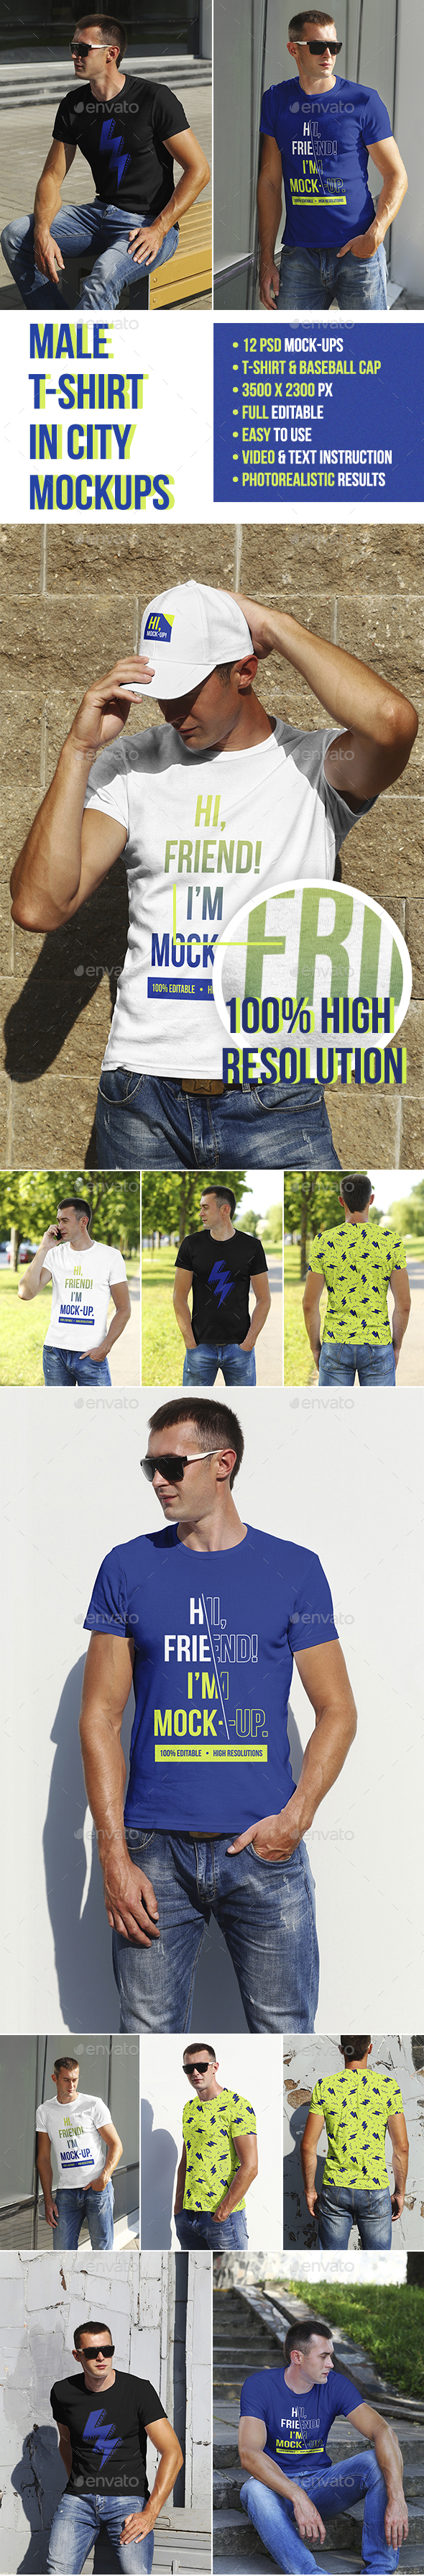 GraphicRiver Male T-Shirt in City Mockups 20873779